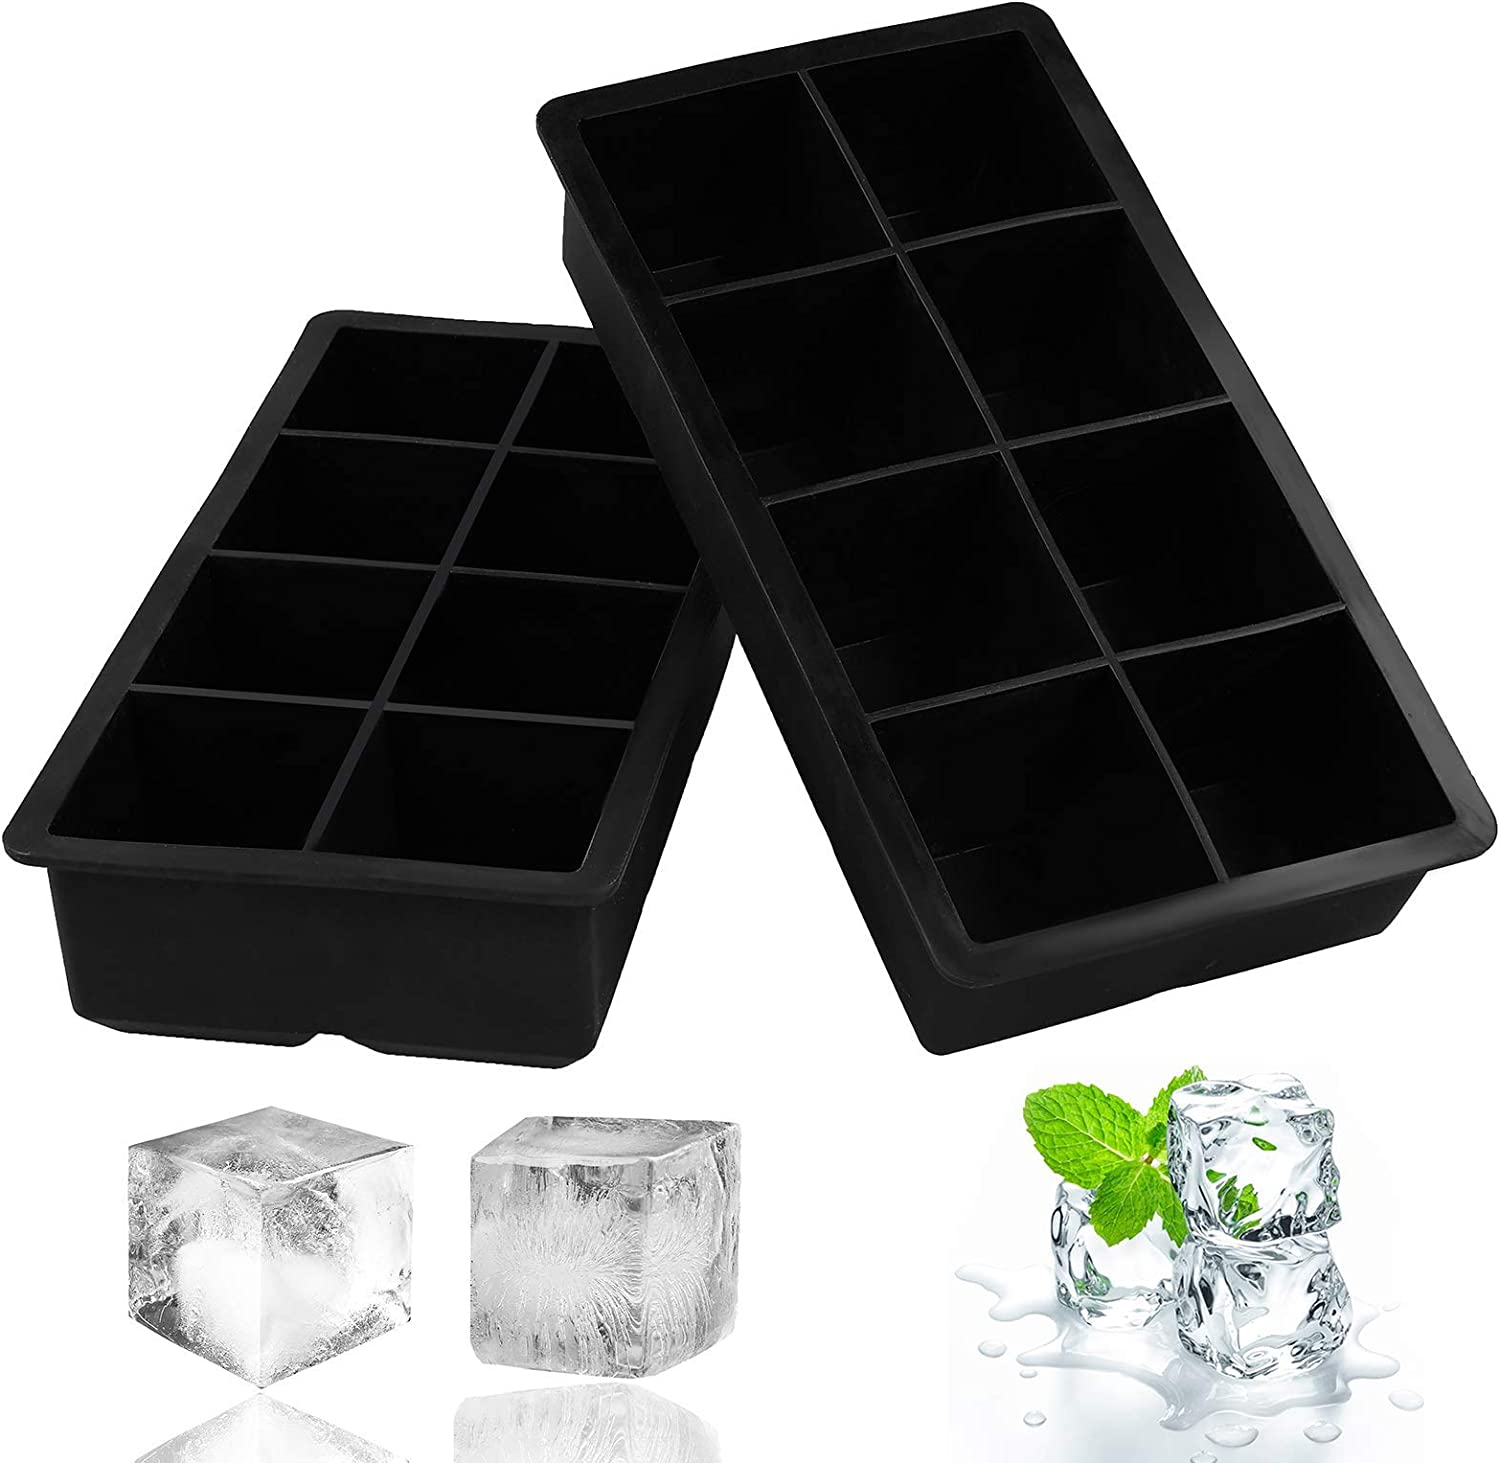 2 PCS Premium Ice Cube Trays, AUSSUA Large Size Silicone Flexible 8 Cavity Ice Maker for Whiskey, Cocktails, Food, Reusable BPA Free Safe Ice Mold, Keep Drinks Chilled(Black)